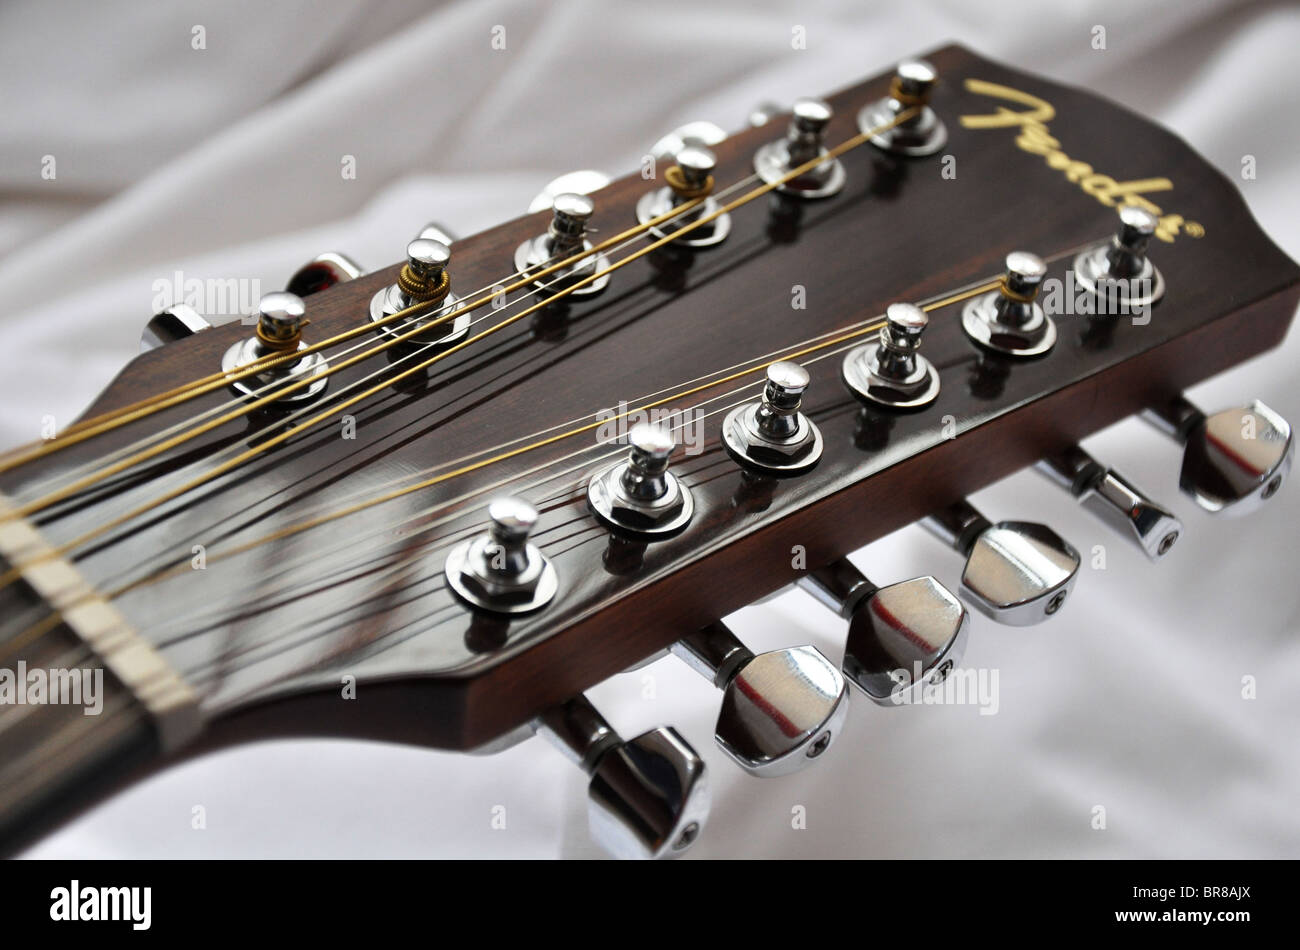 fender 12 string guitar head and tuning pegs stock photo royalty free image 31531442 alamy. Black Bedroom Furniture Sets. Home Design Ideas